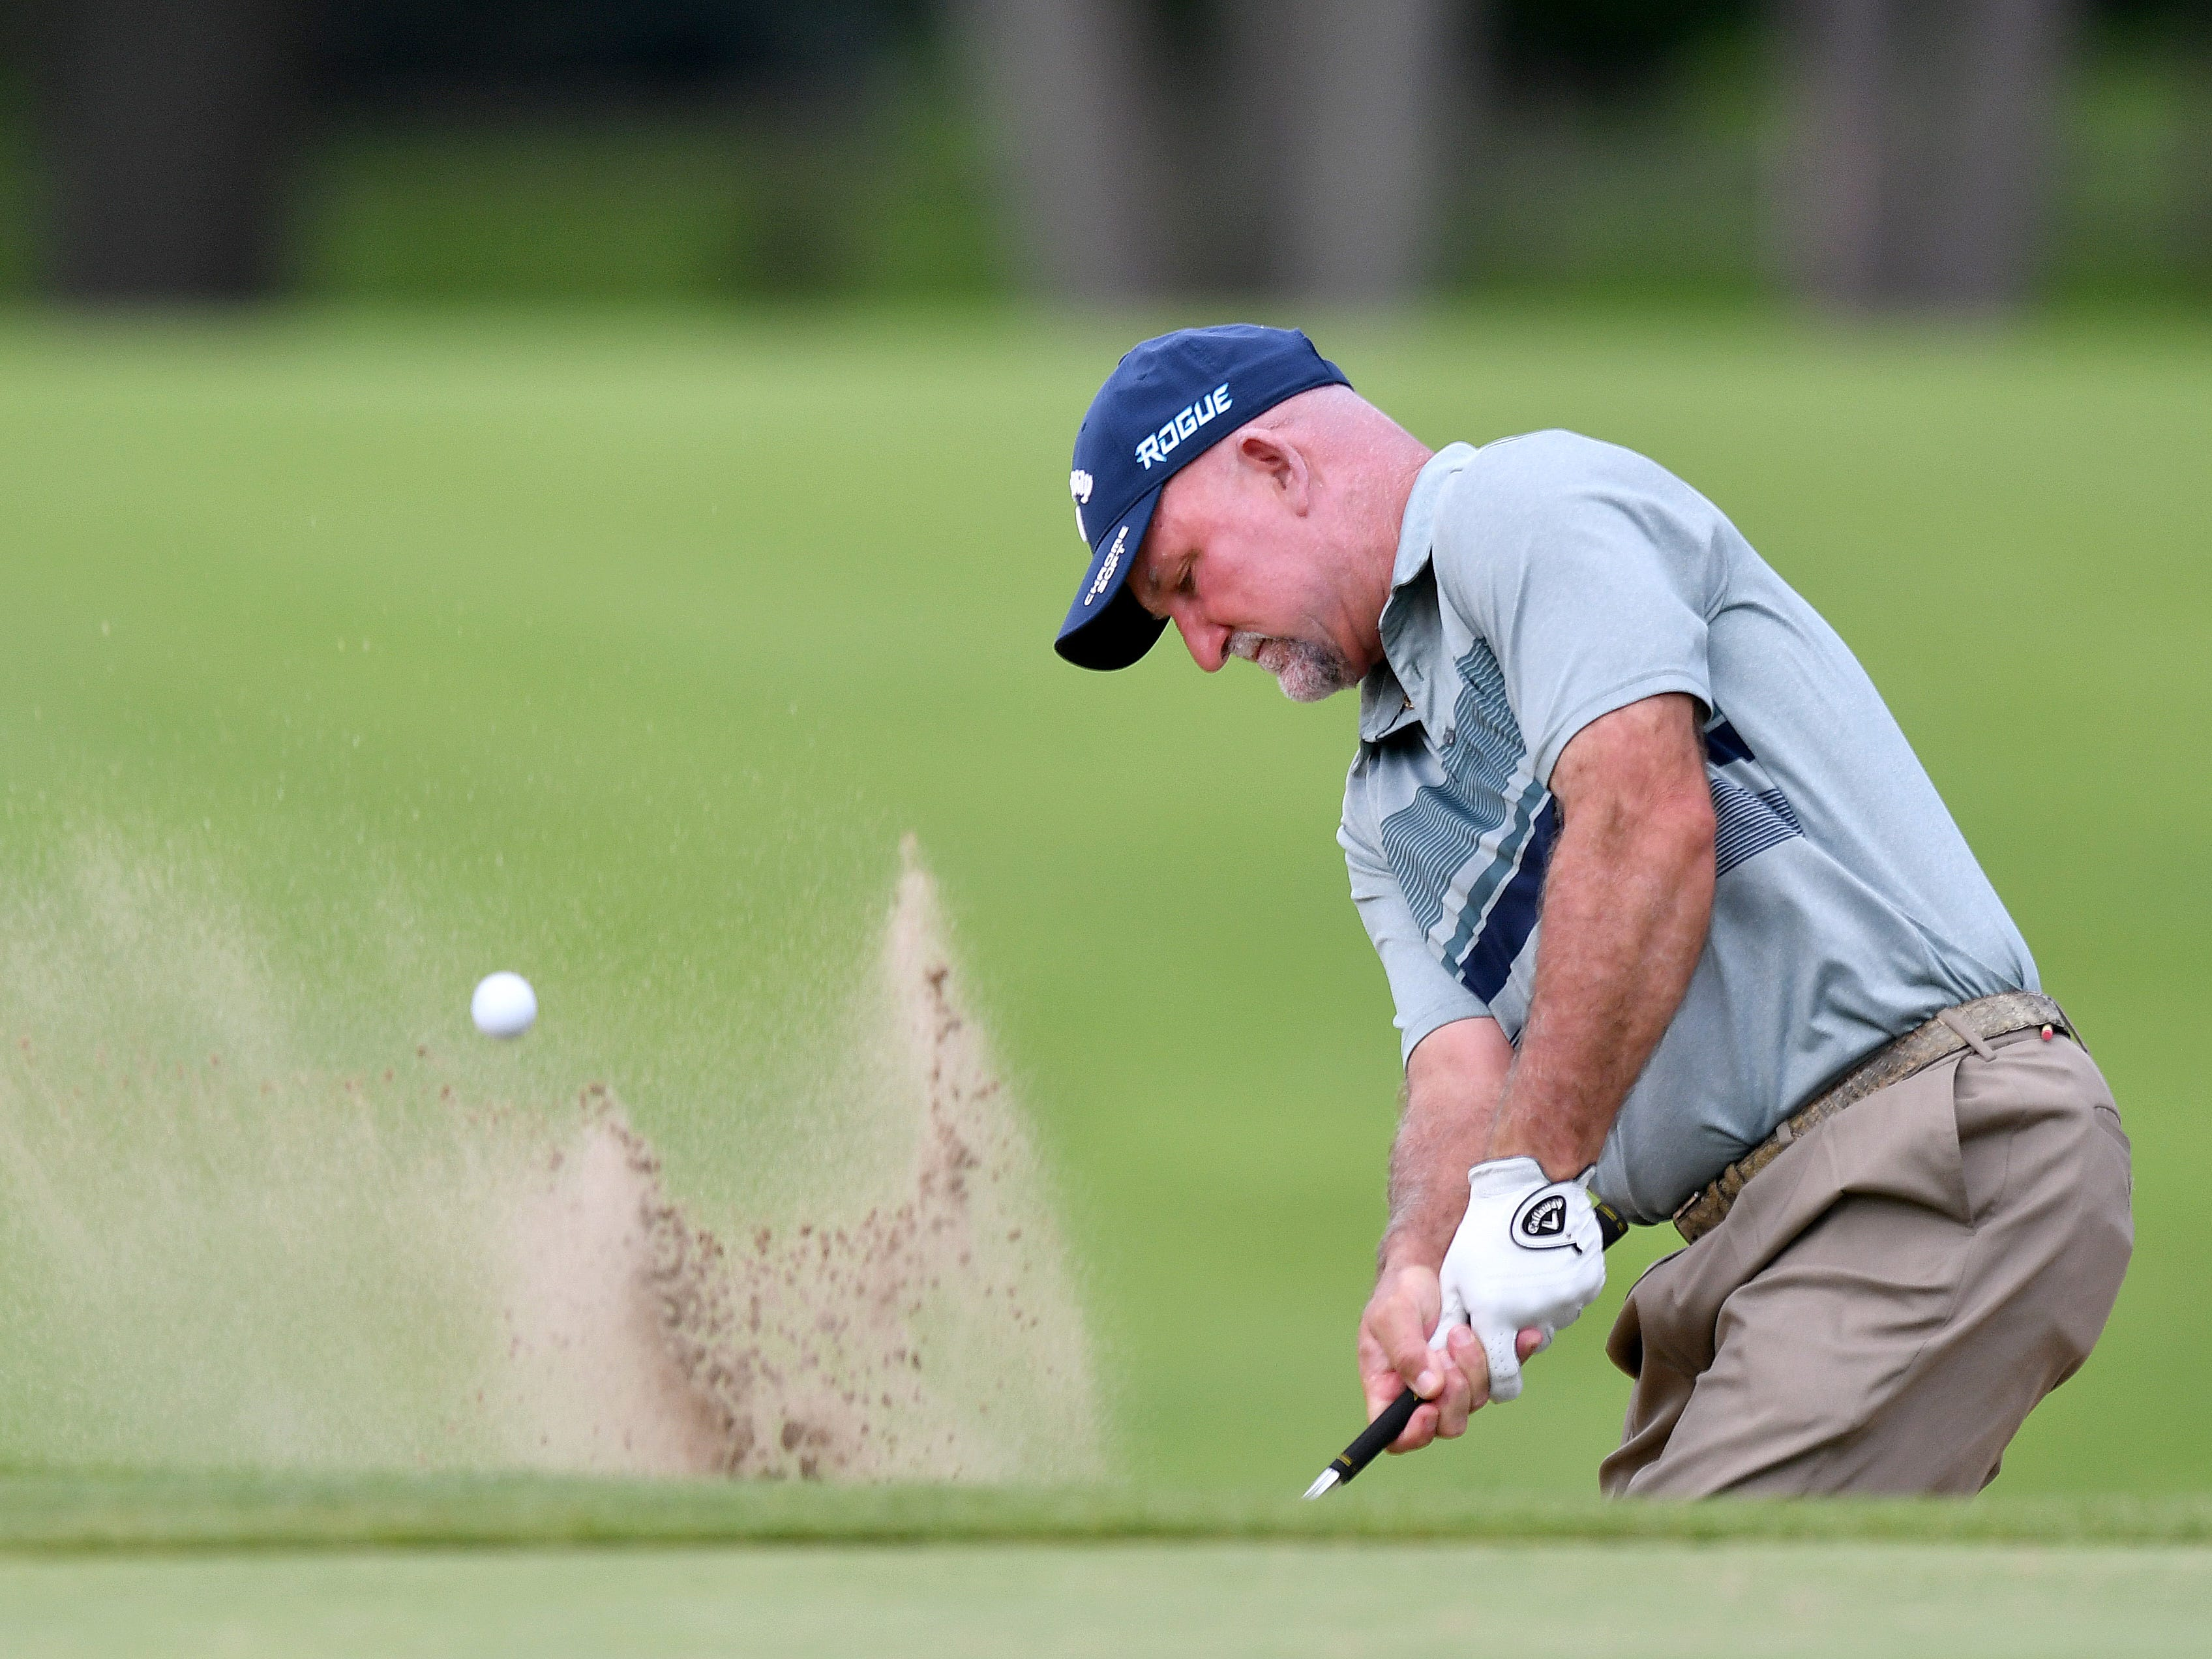 Marco Dawson hits out of a bunker on the first hole at the Ally Challenge.